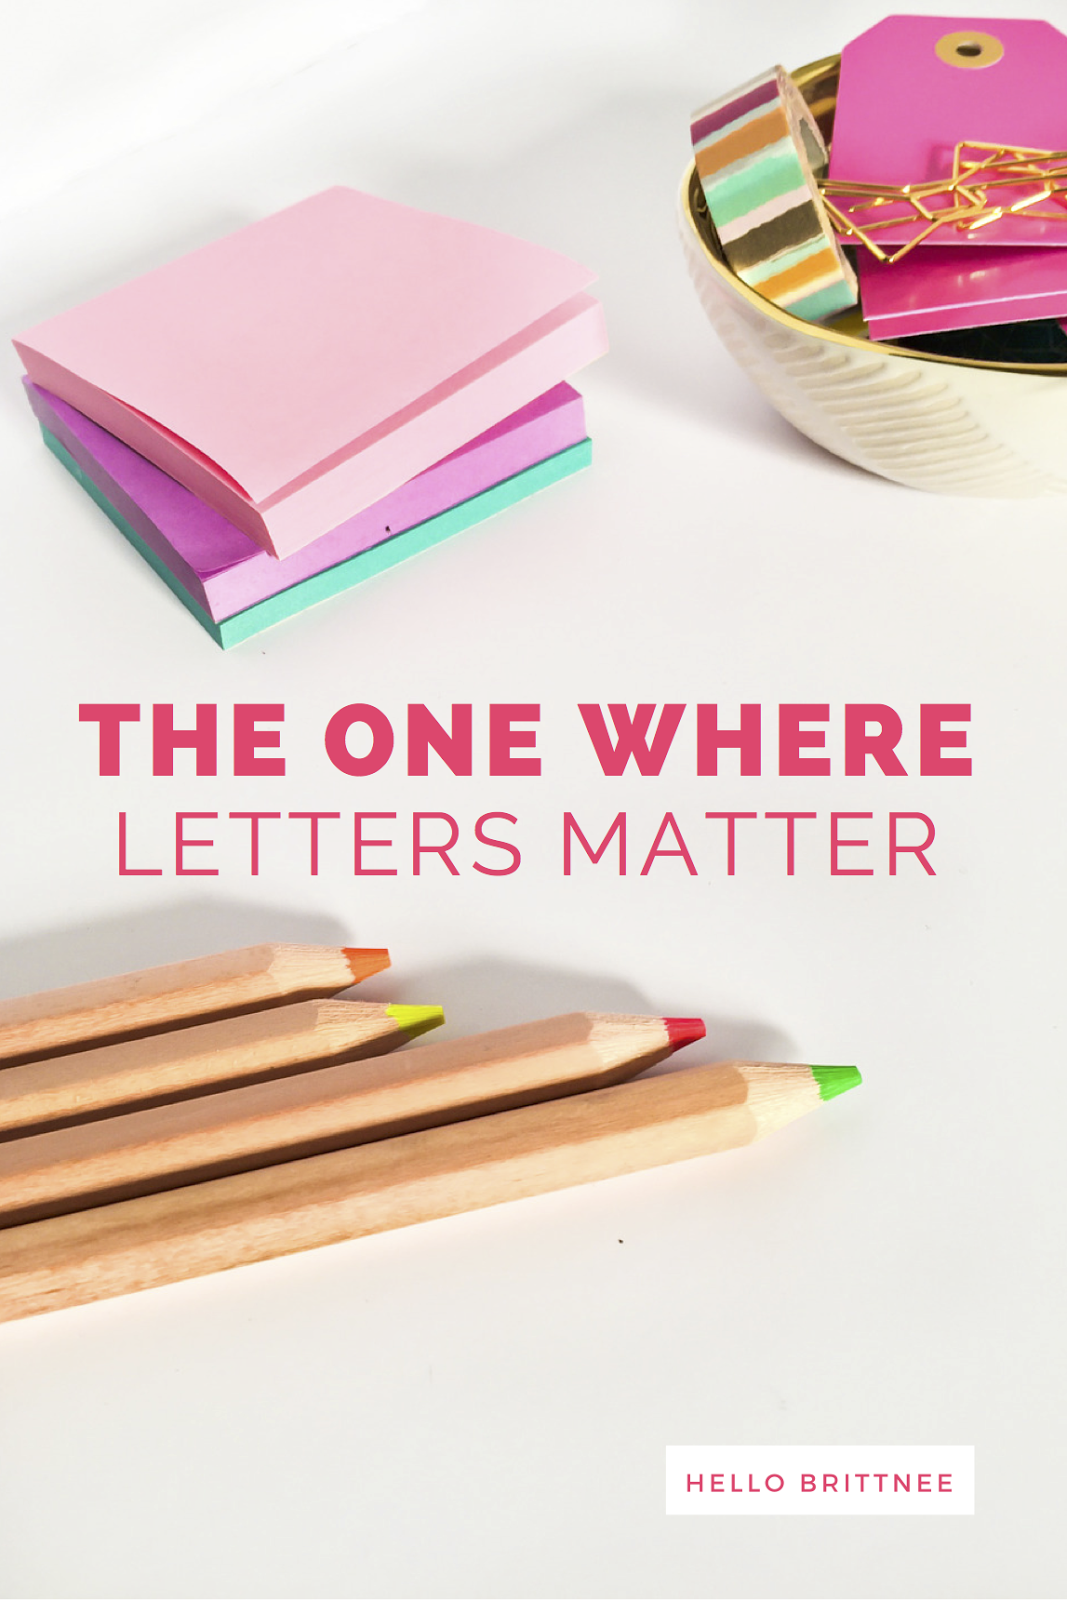 The One Where Letters Matter